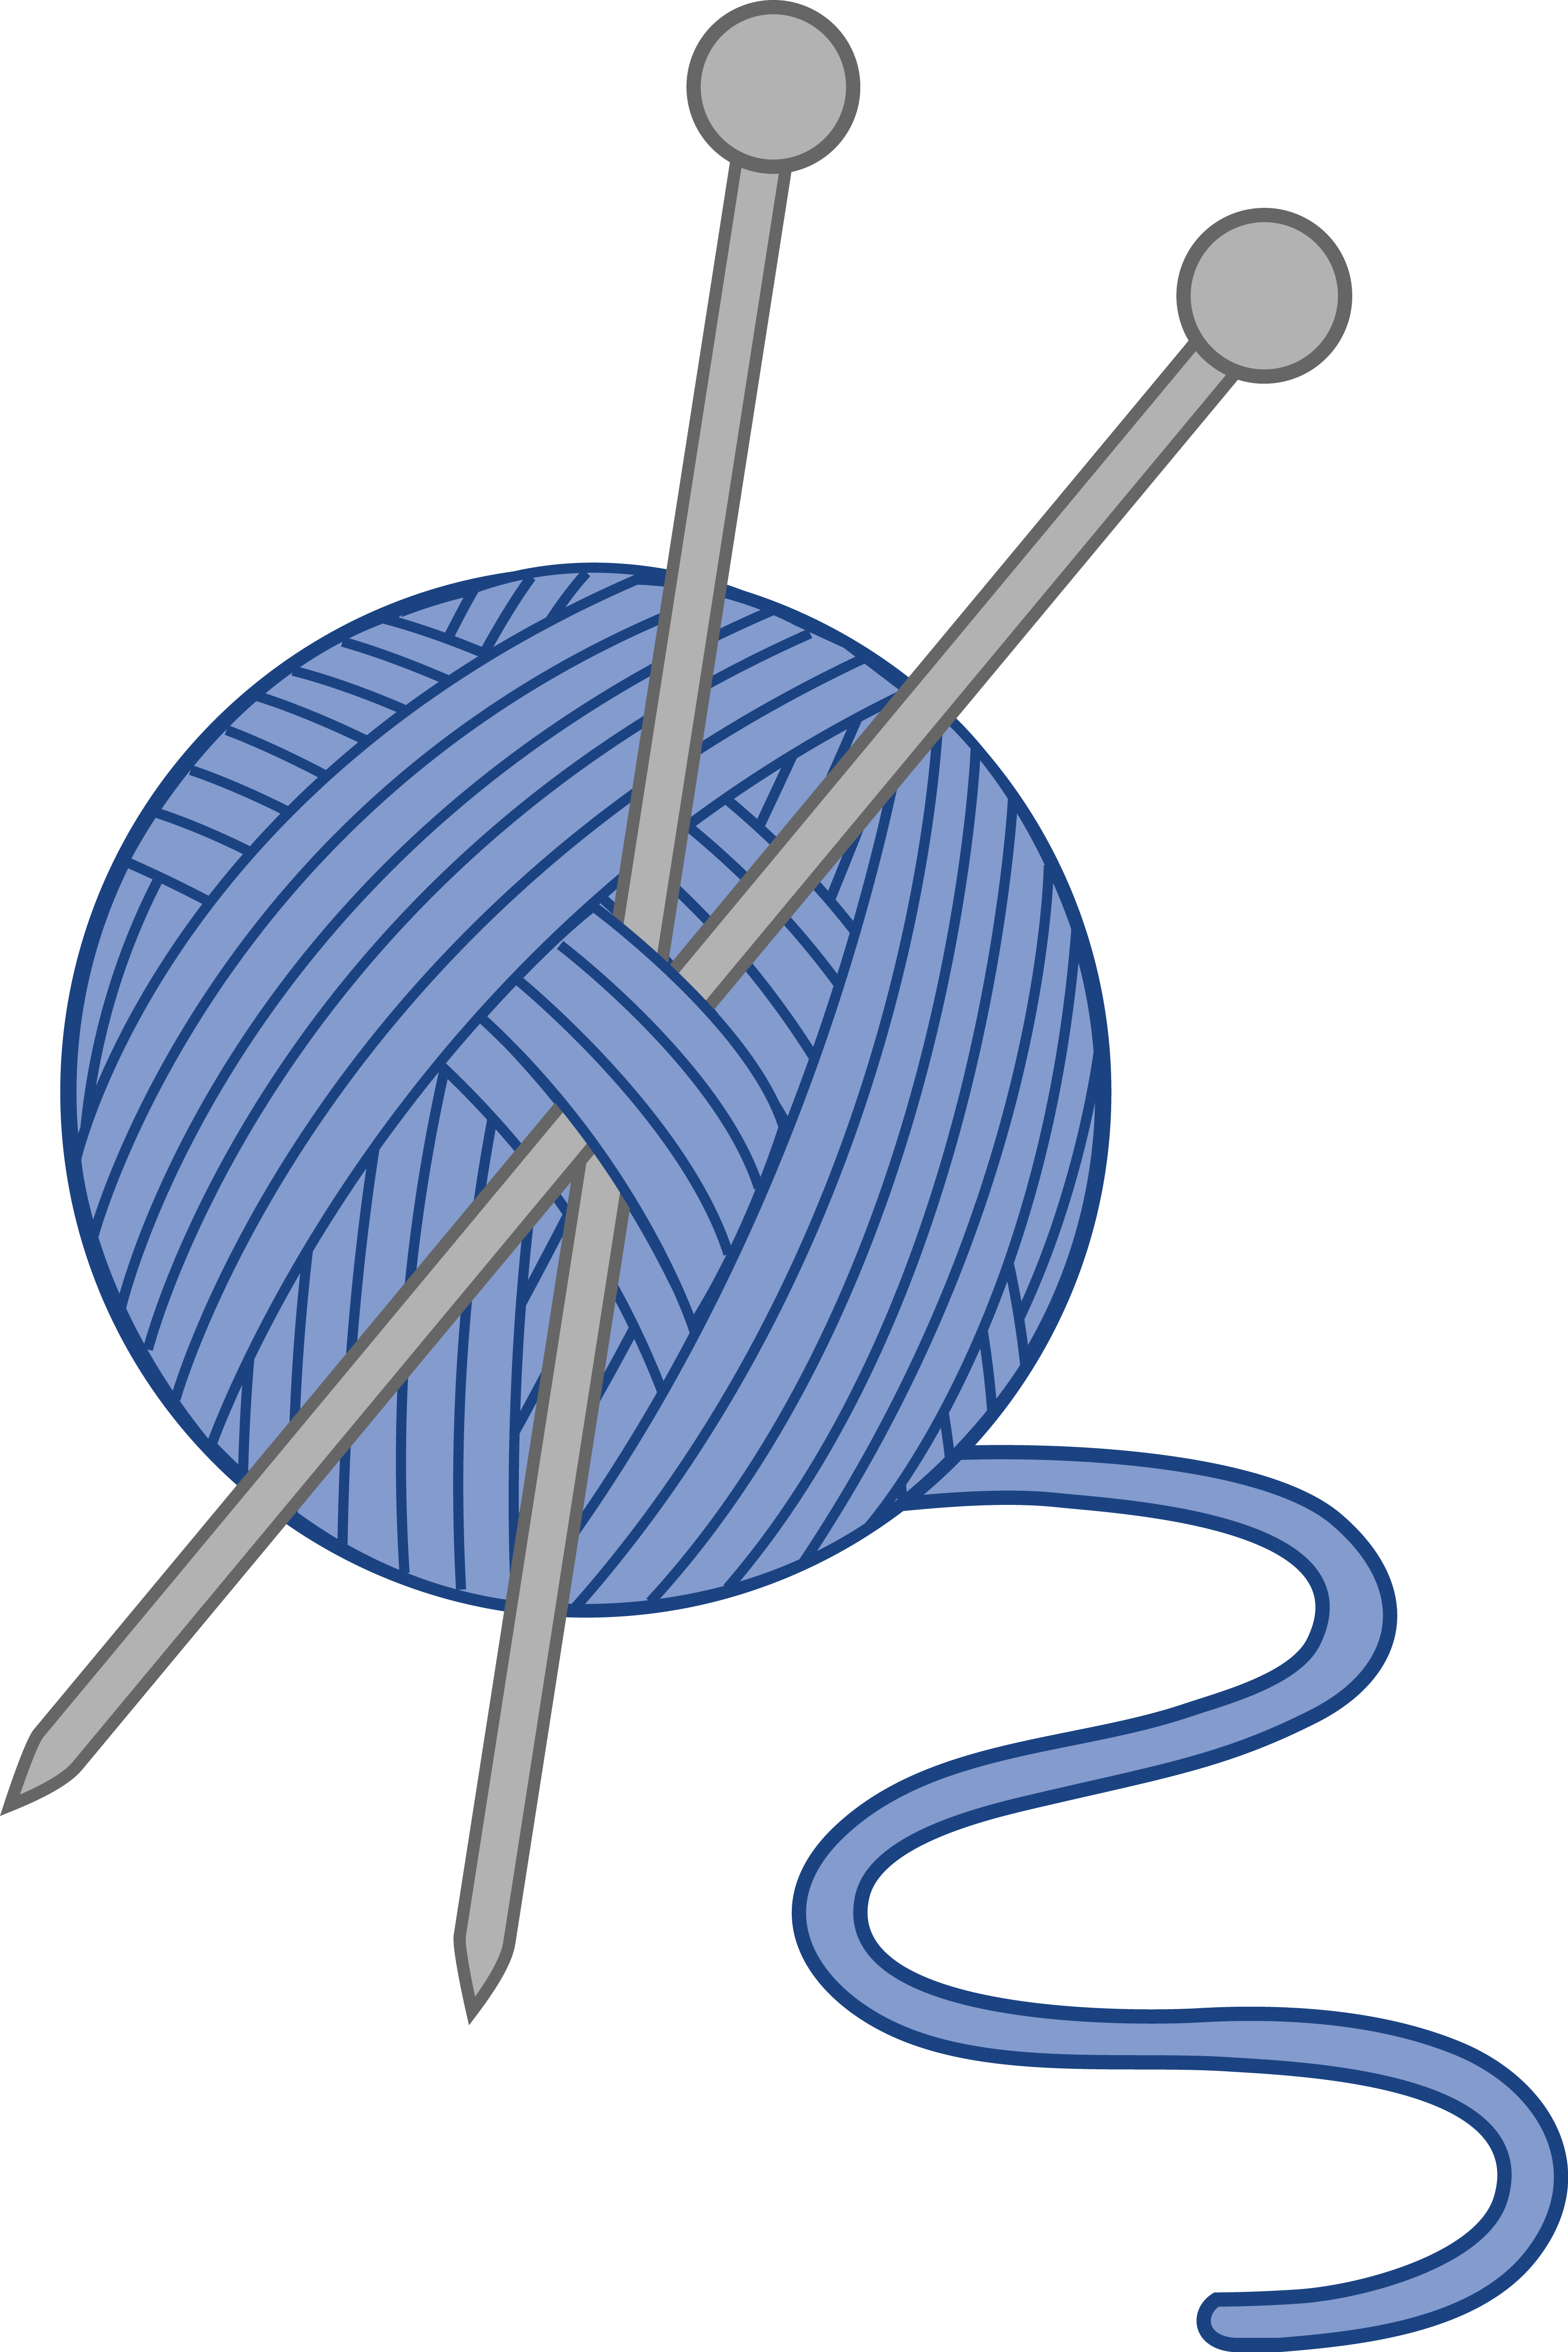 Yarn Clipart Clipart Panda Free Clipart Images